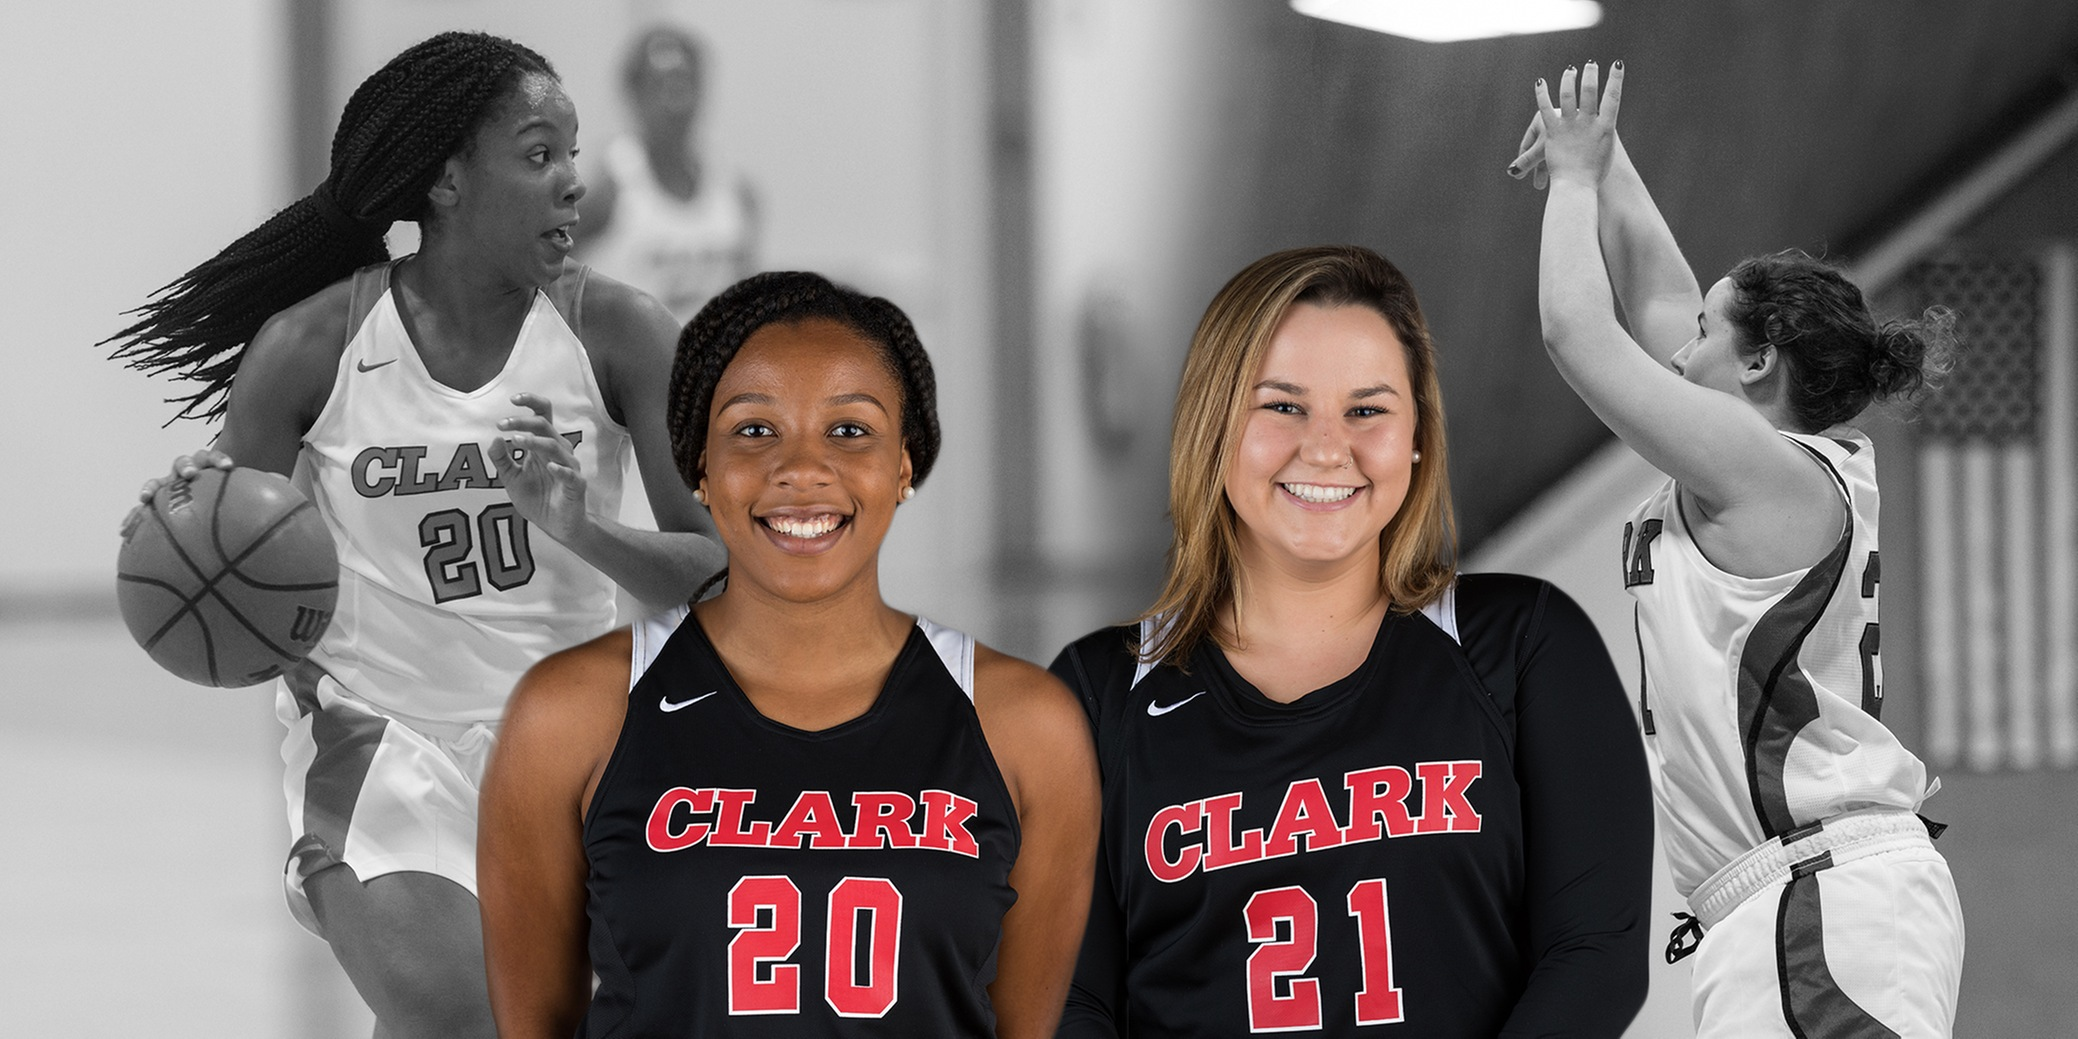 Ezemma and Ouellette Named 2018-2019 Women's Basketball Captains